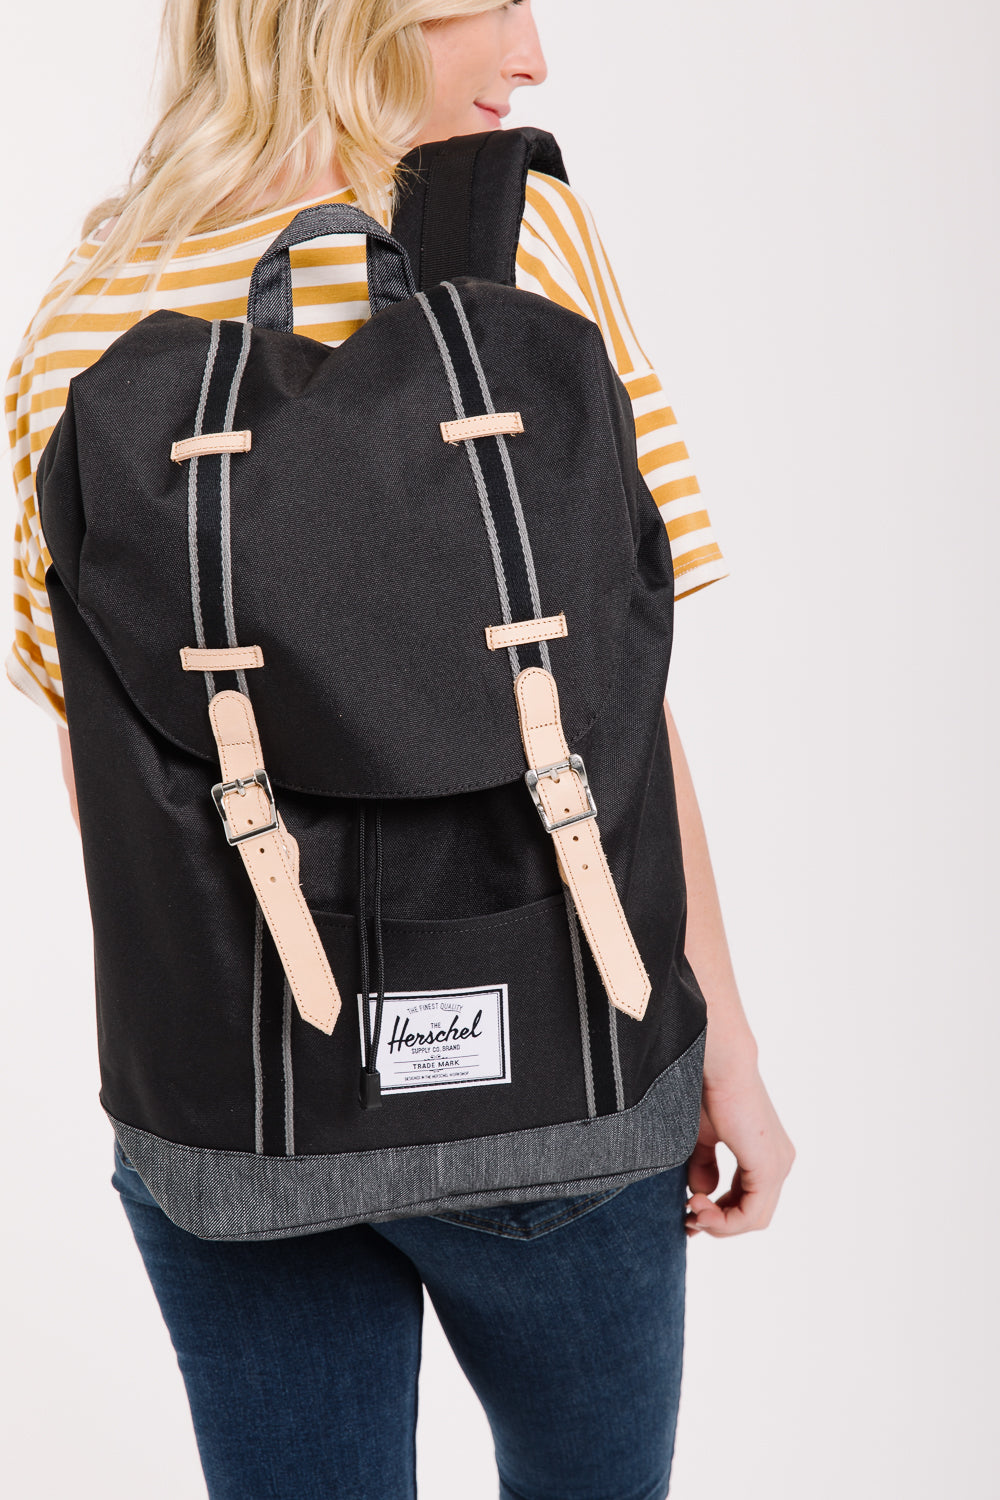 Herschel: Retreat Backpack in Black/Black Denim